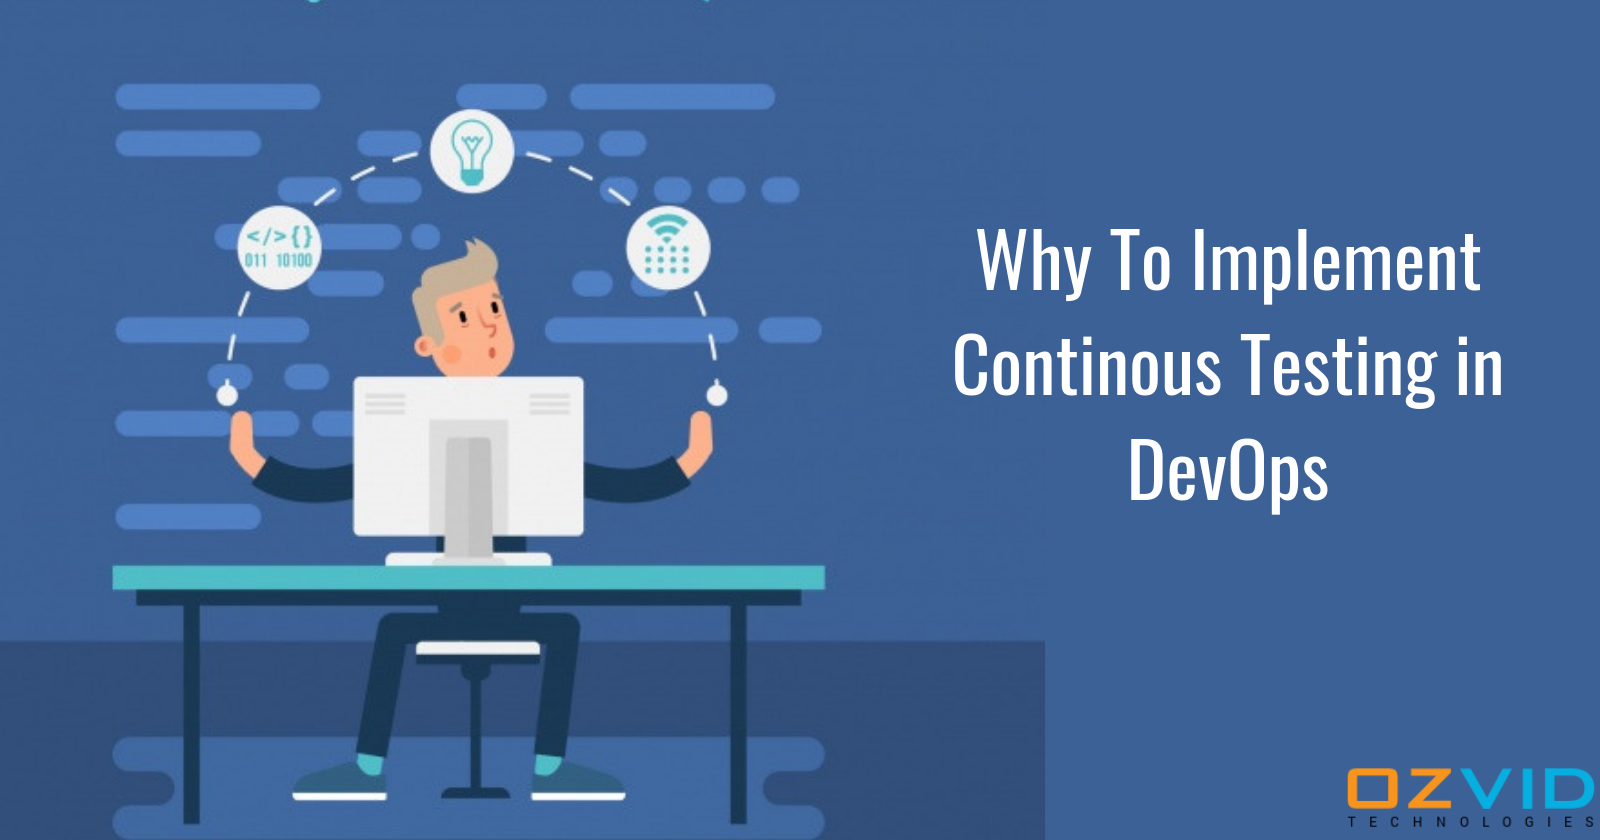 Why To Implement Continous Testing in DevOps